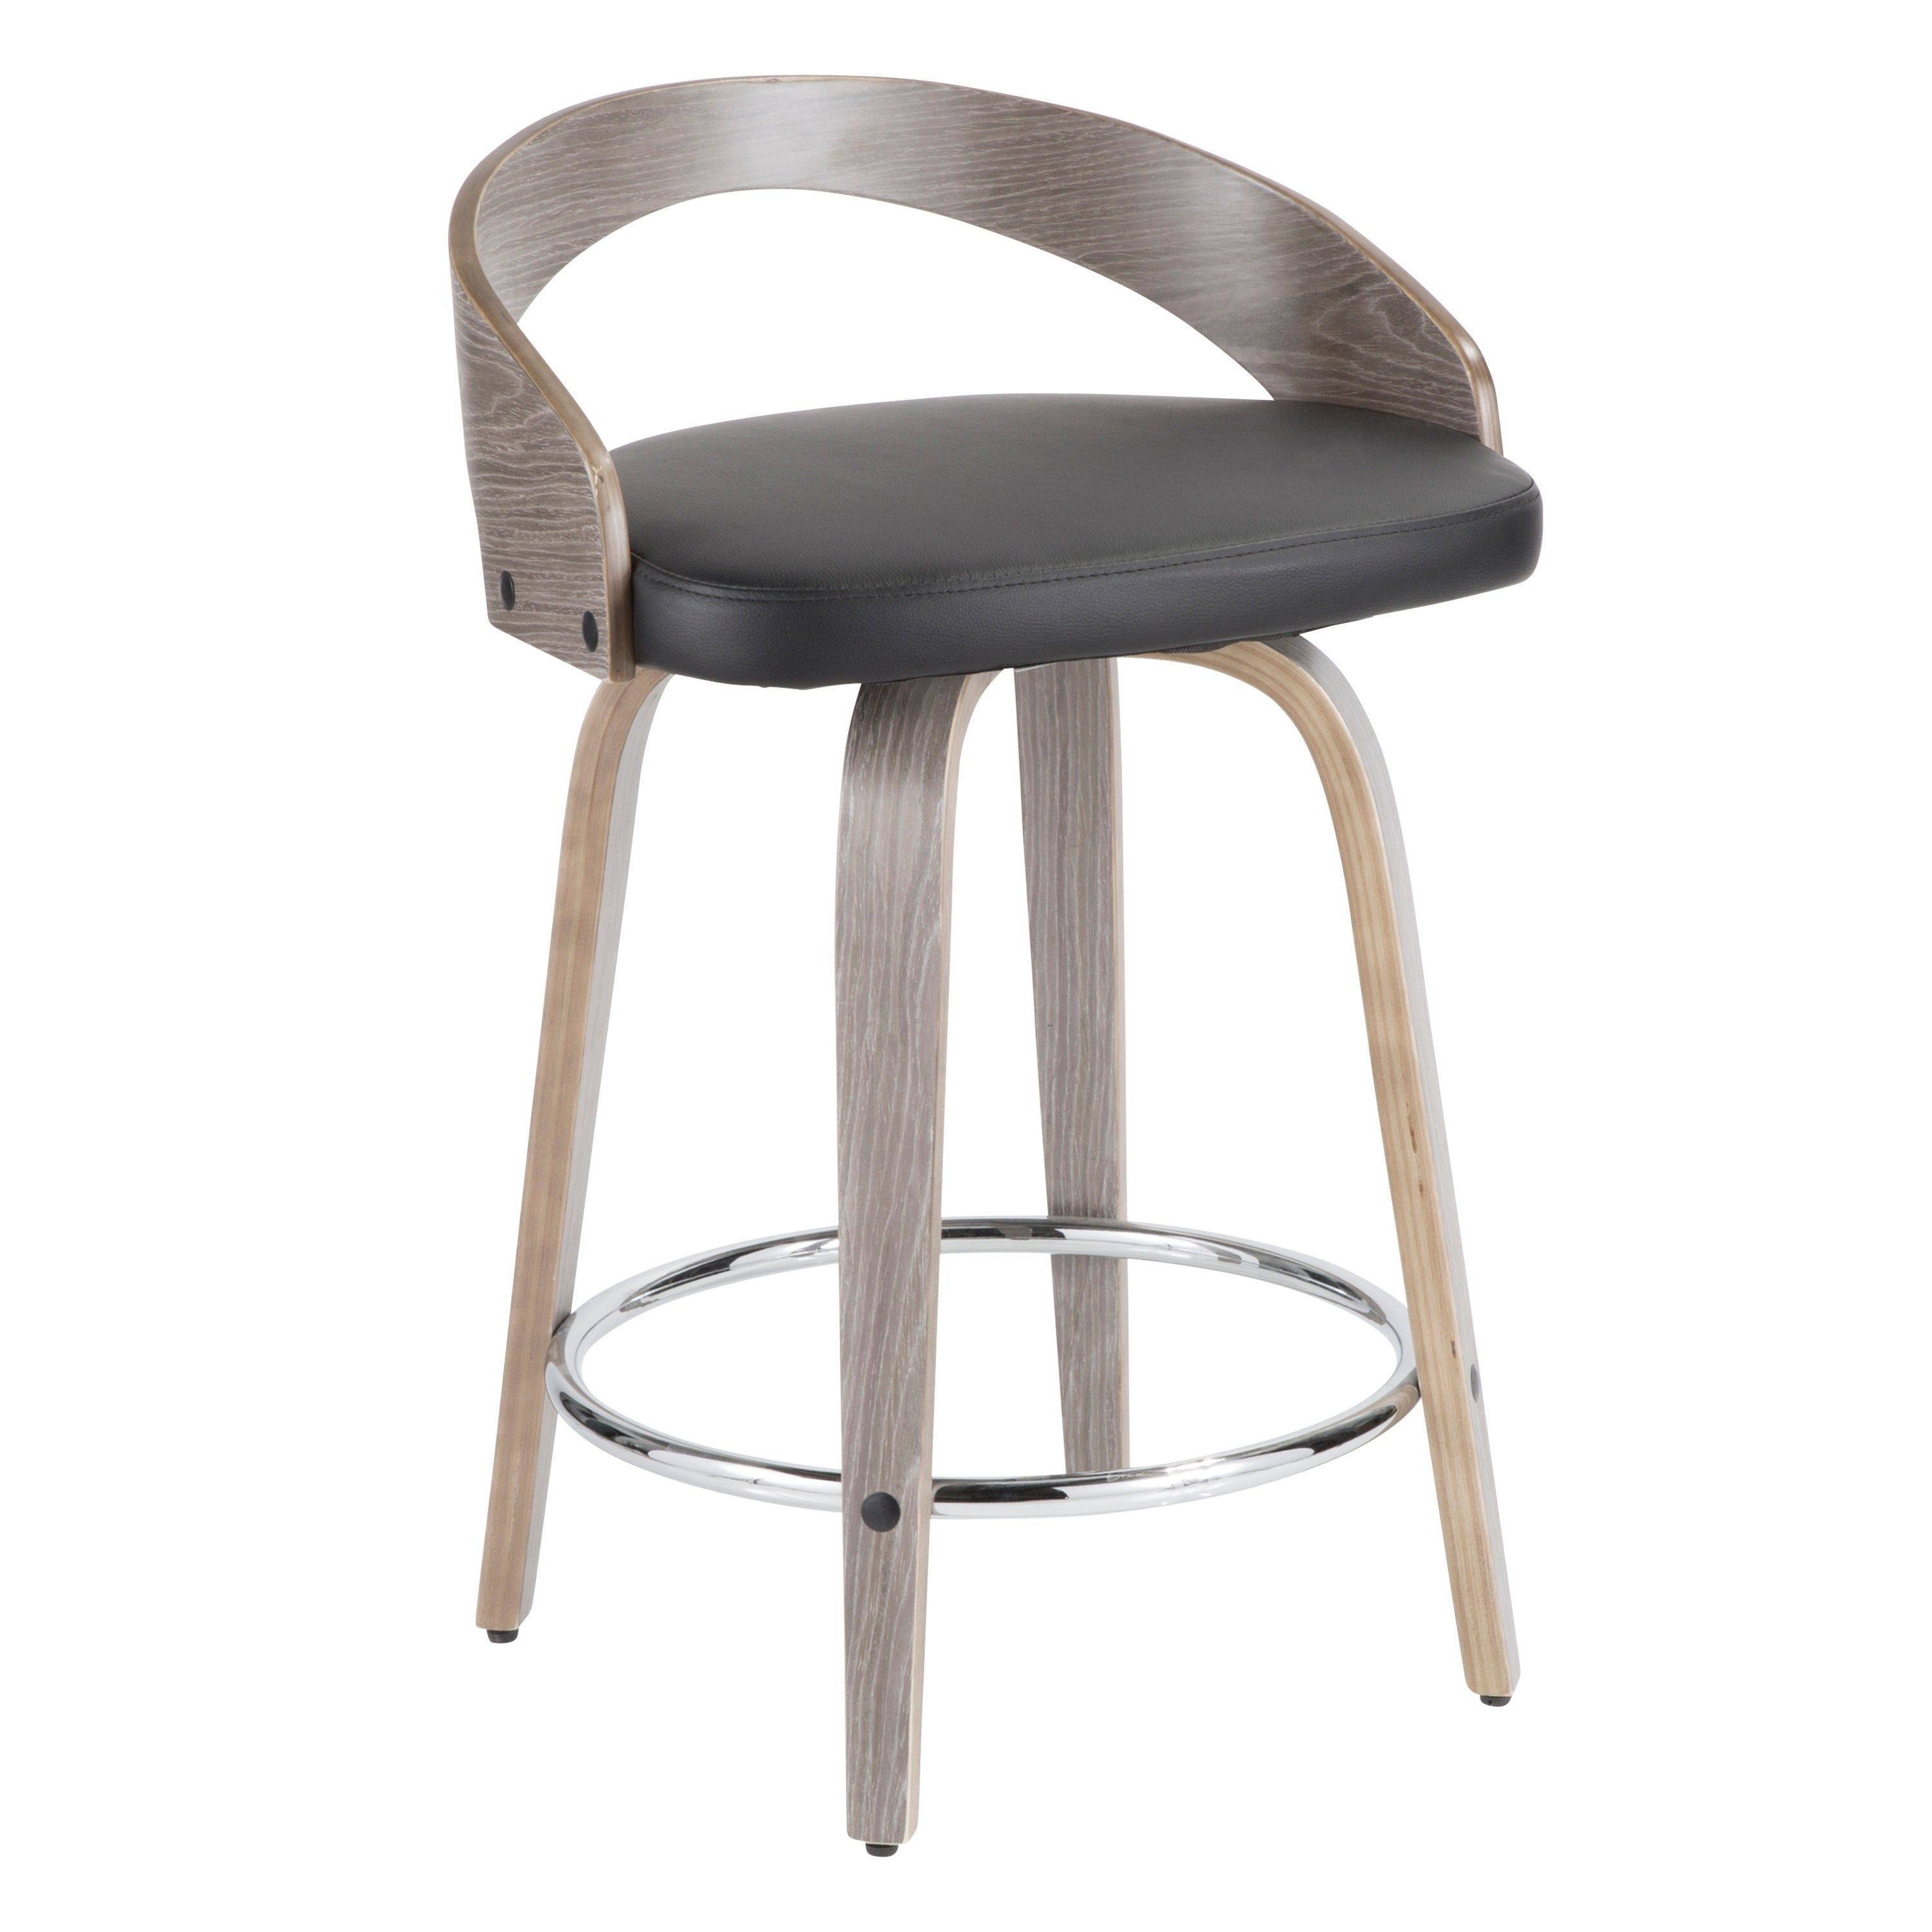 Shop palm canyon valencia mid century modern counter stool free shipping today overstock com 20882670